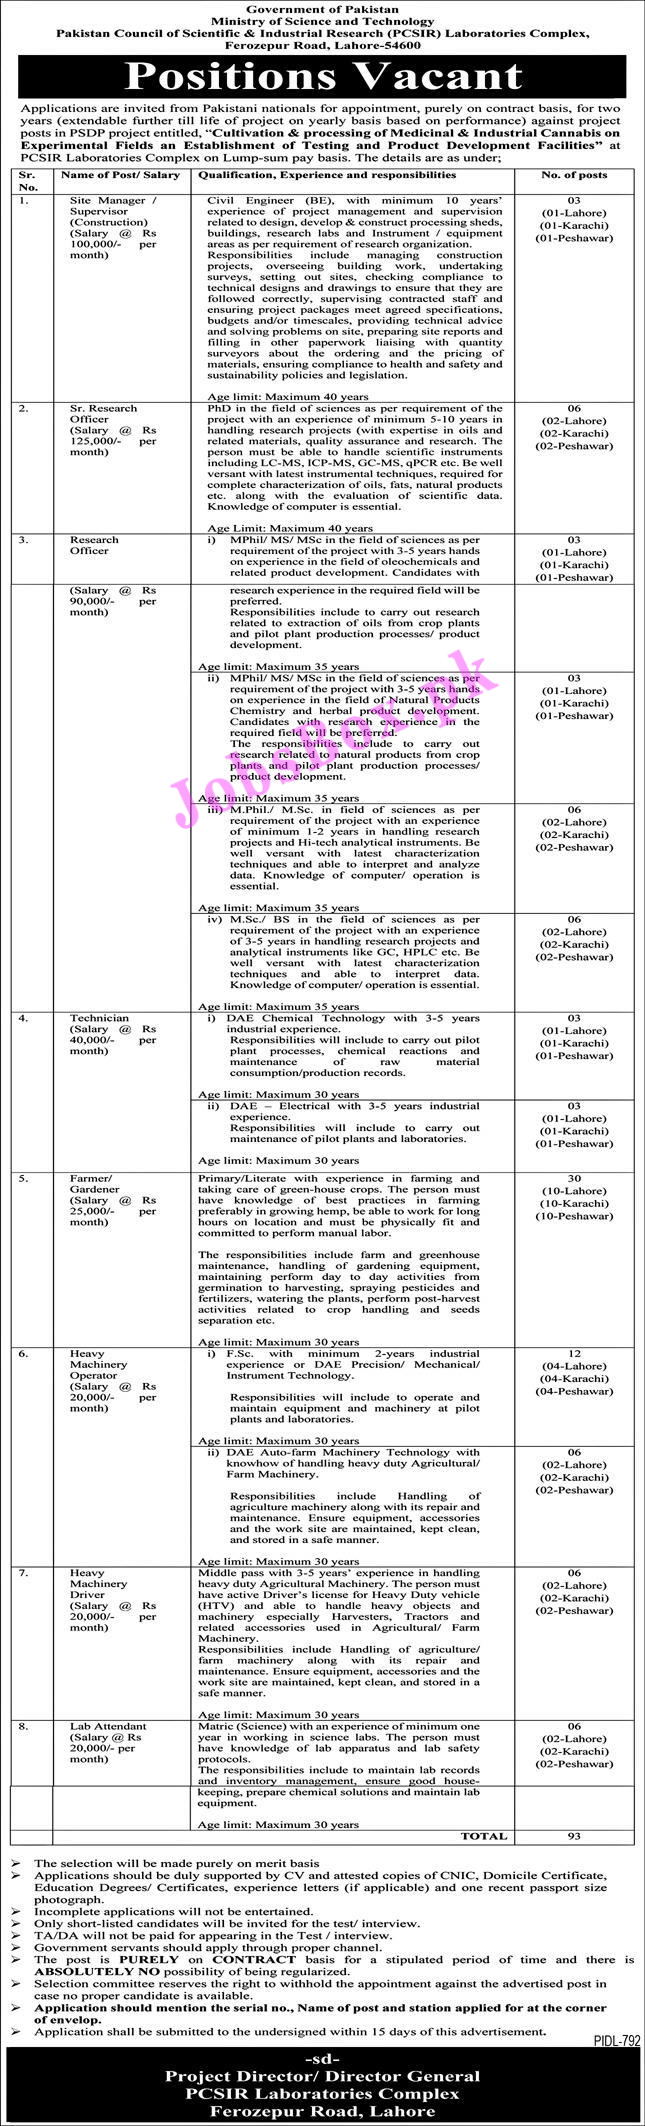 Ministry of Science & Technology MOST Latest Jobs 2021 – PCSIR Jobs